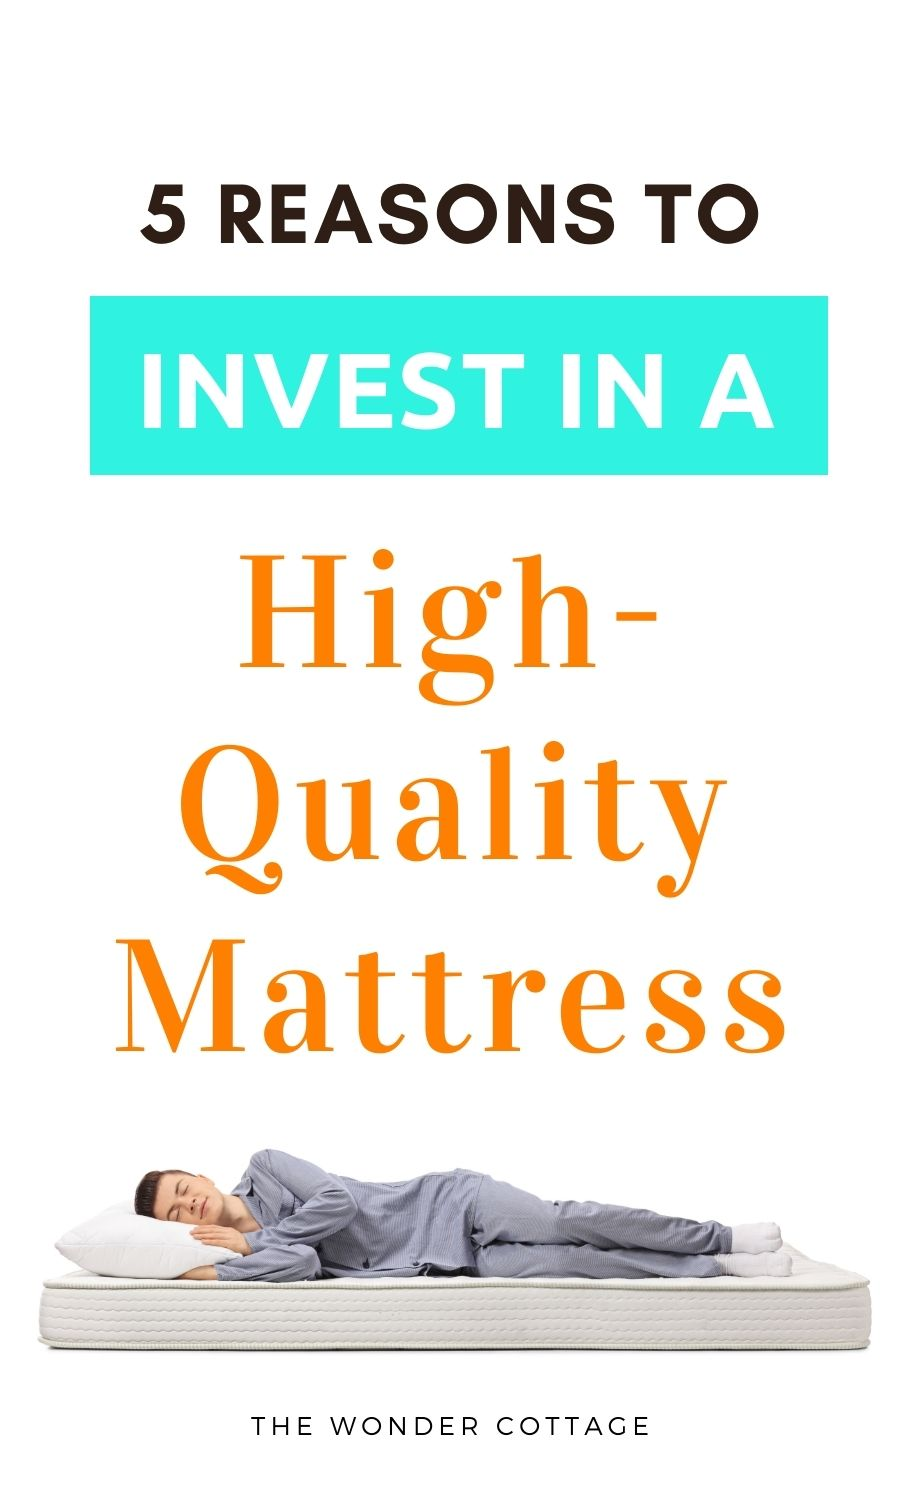 5 Reasons To Invest In A High-Quality Mattress